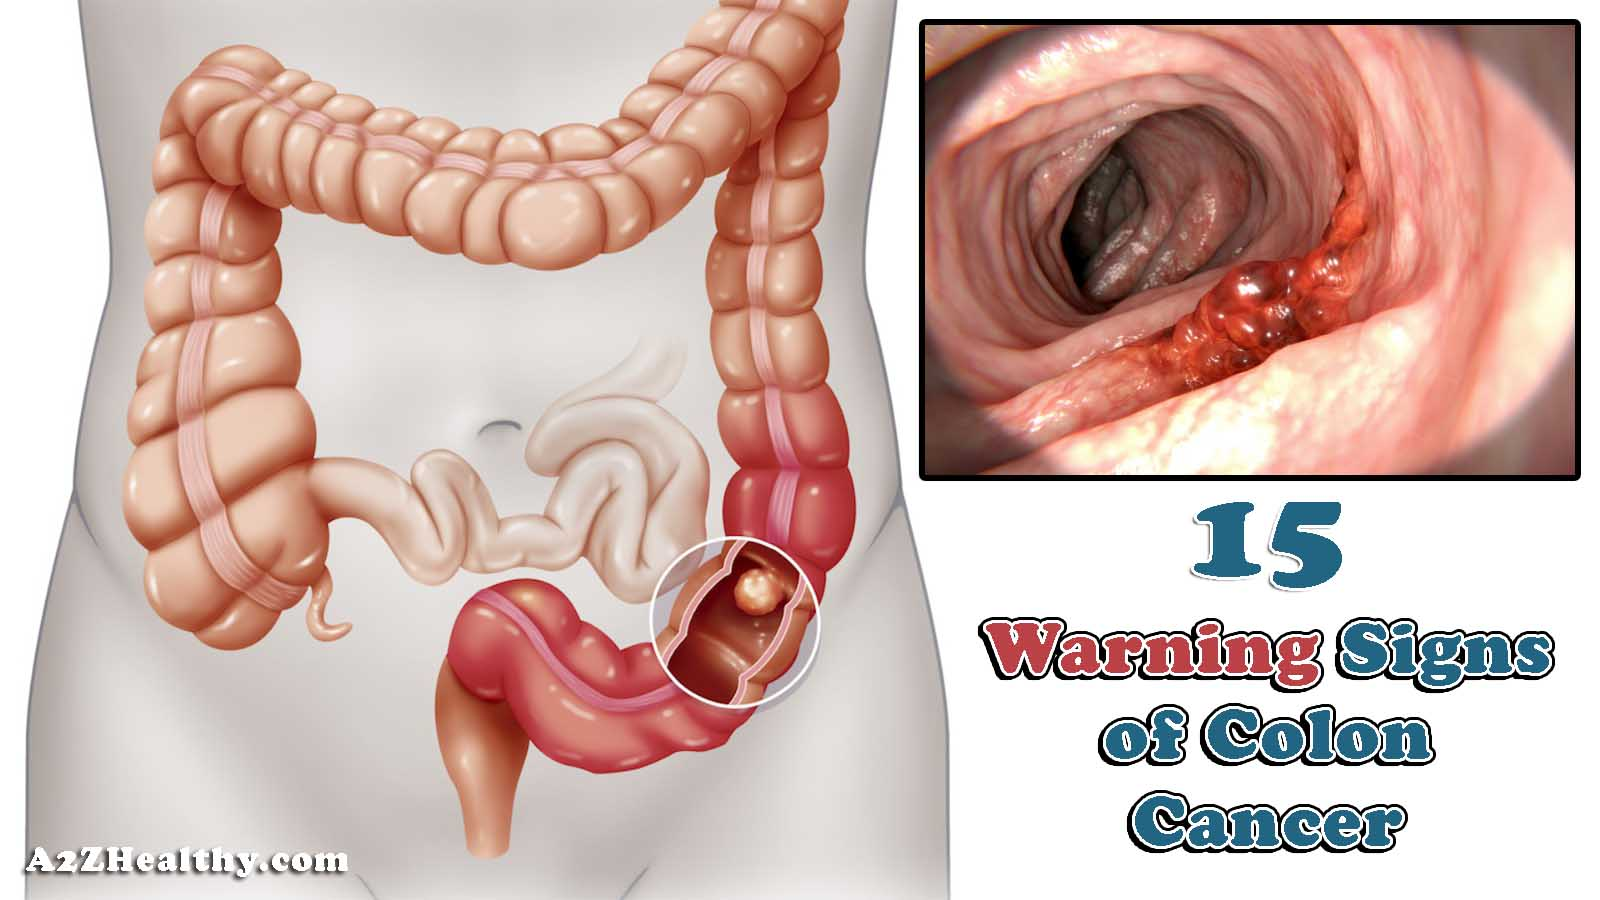 15 Warning Signs Of Colon Cancer You Should Not Ignore